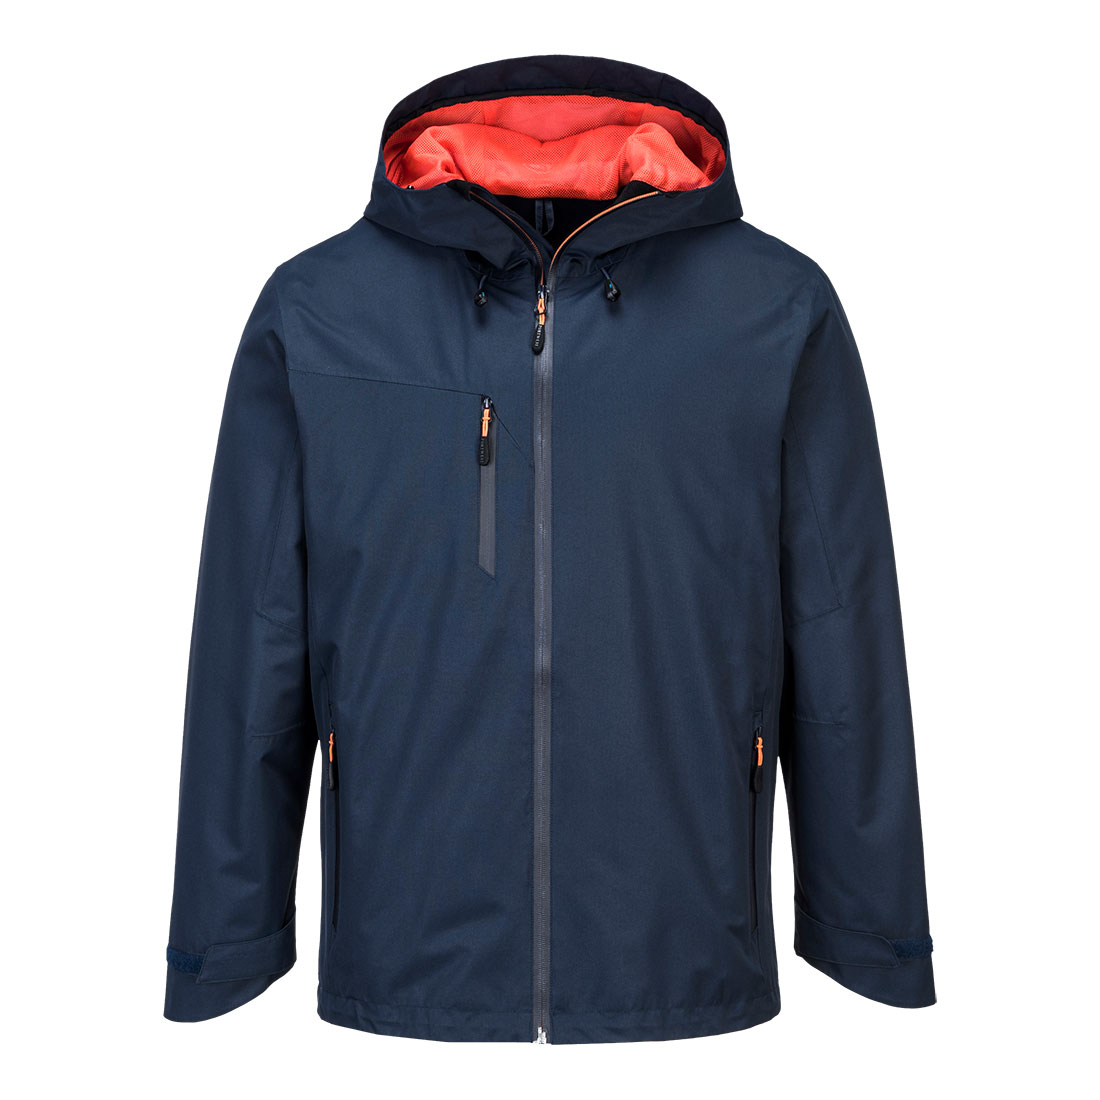 Portwest X3 Shell Jacket Navy Large